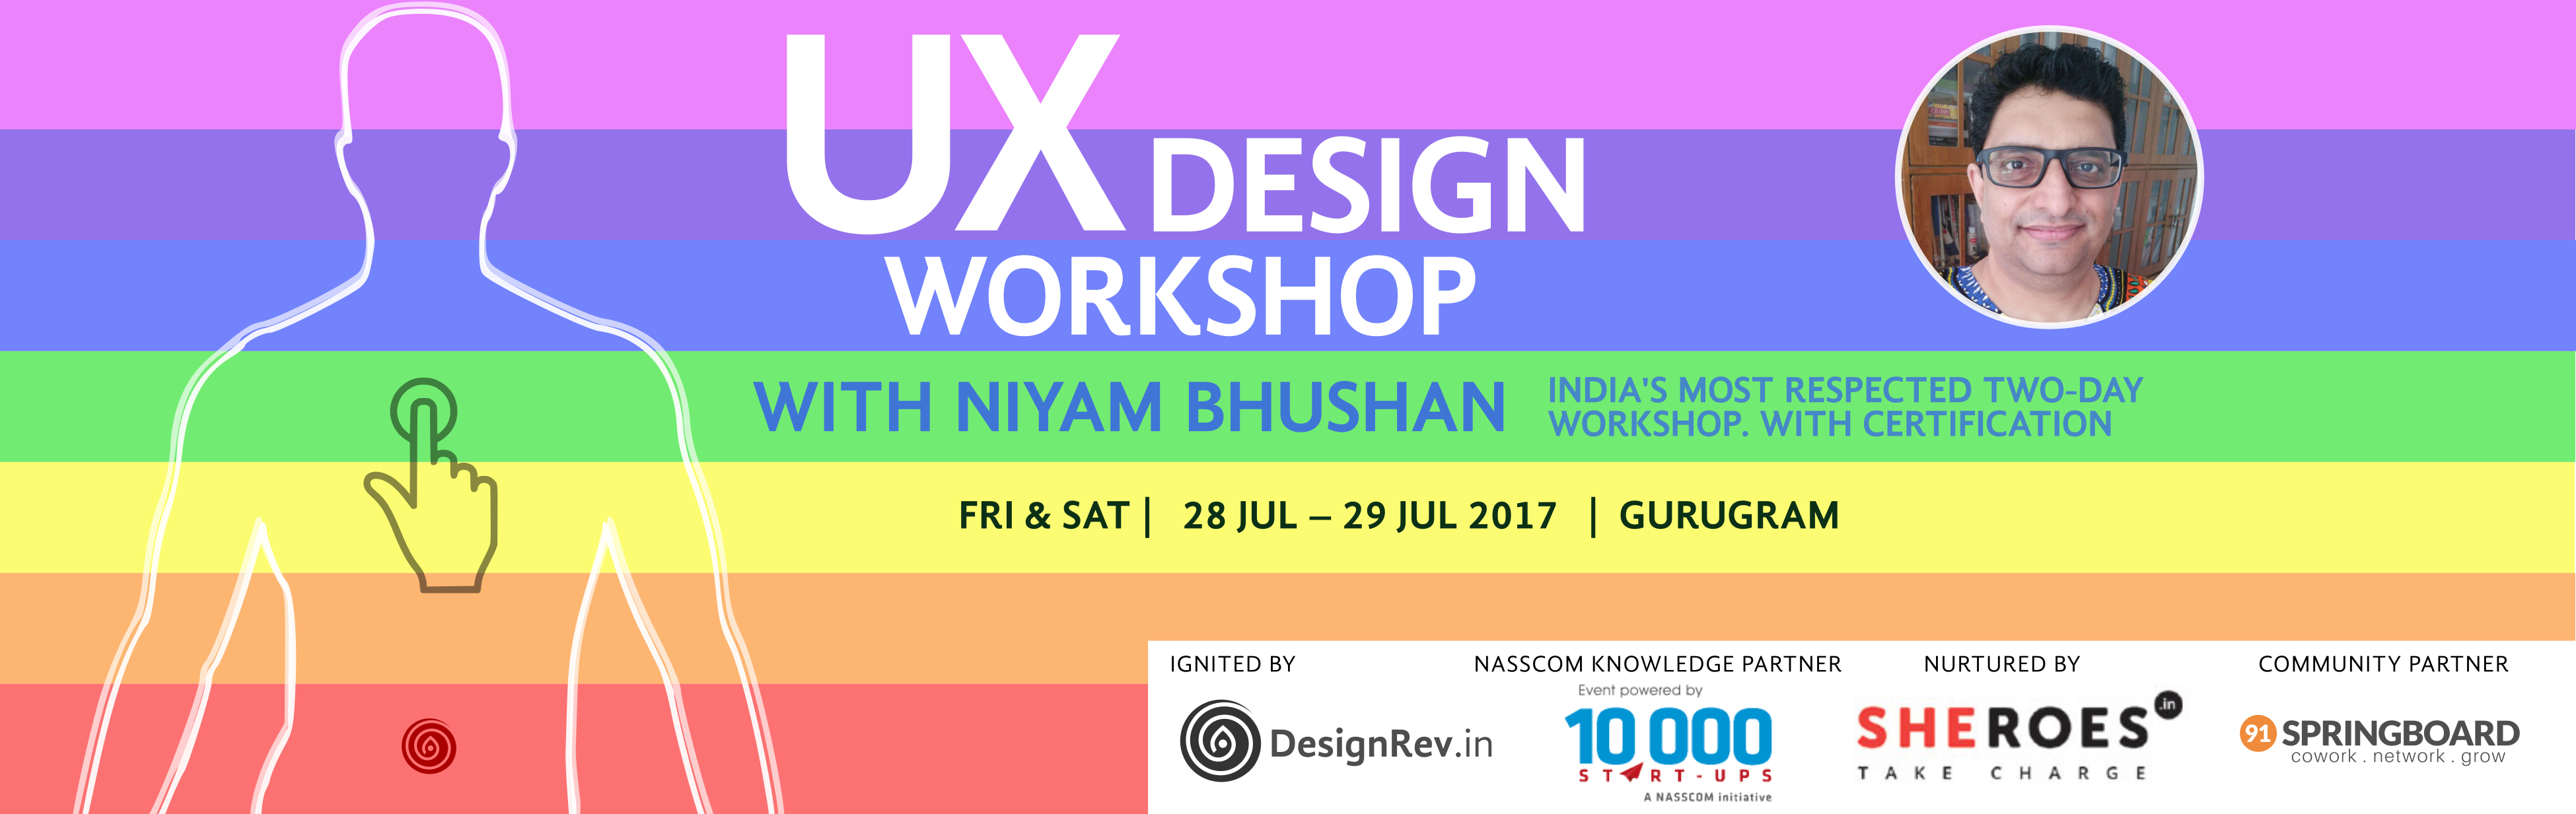 UX Design Workshop. 28 Jul 2017 to 29 Jul 2017, Gurugram India